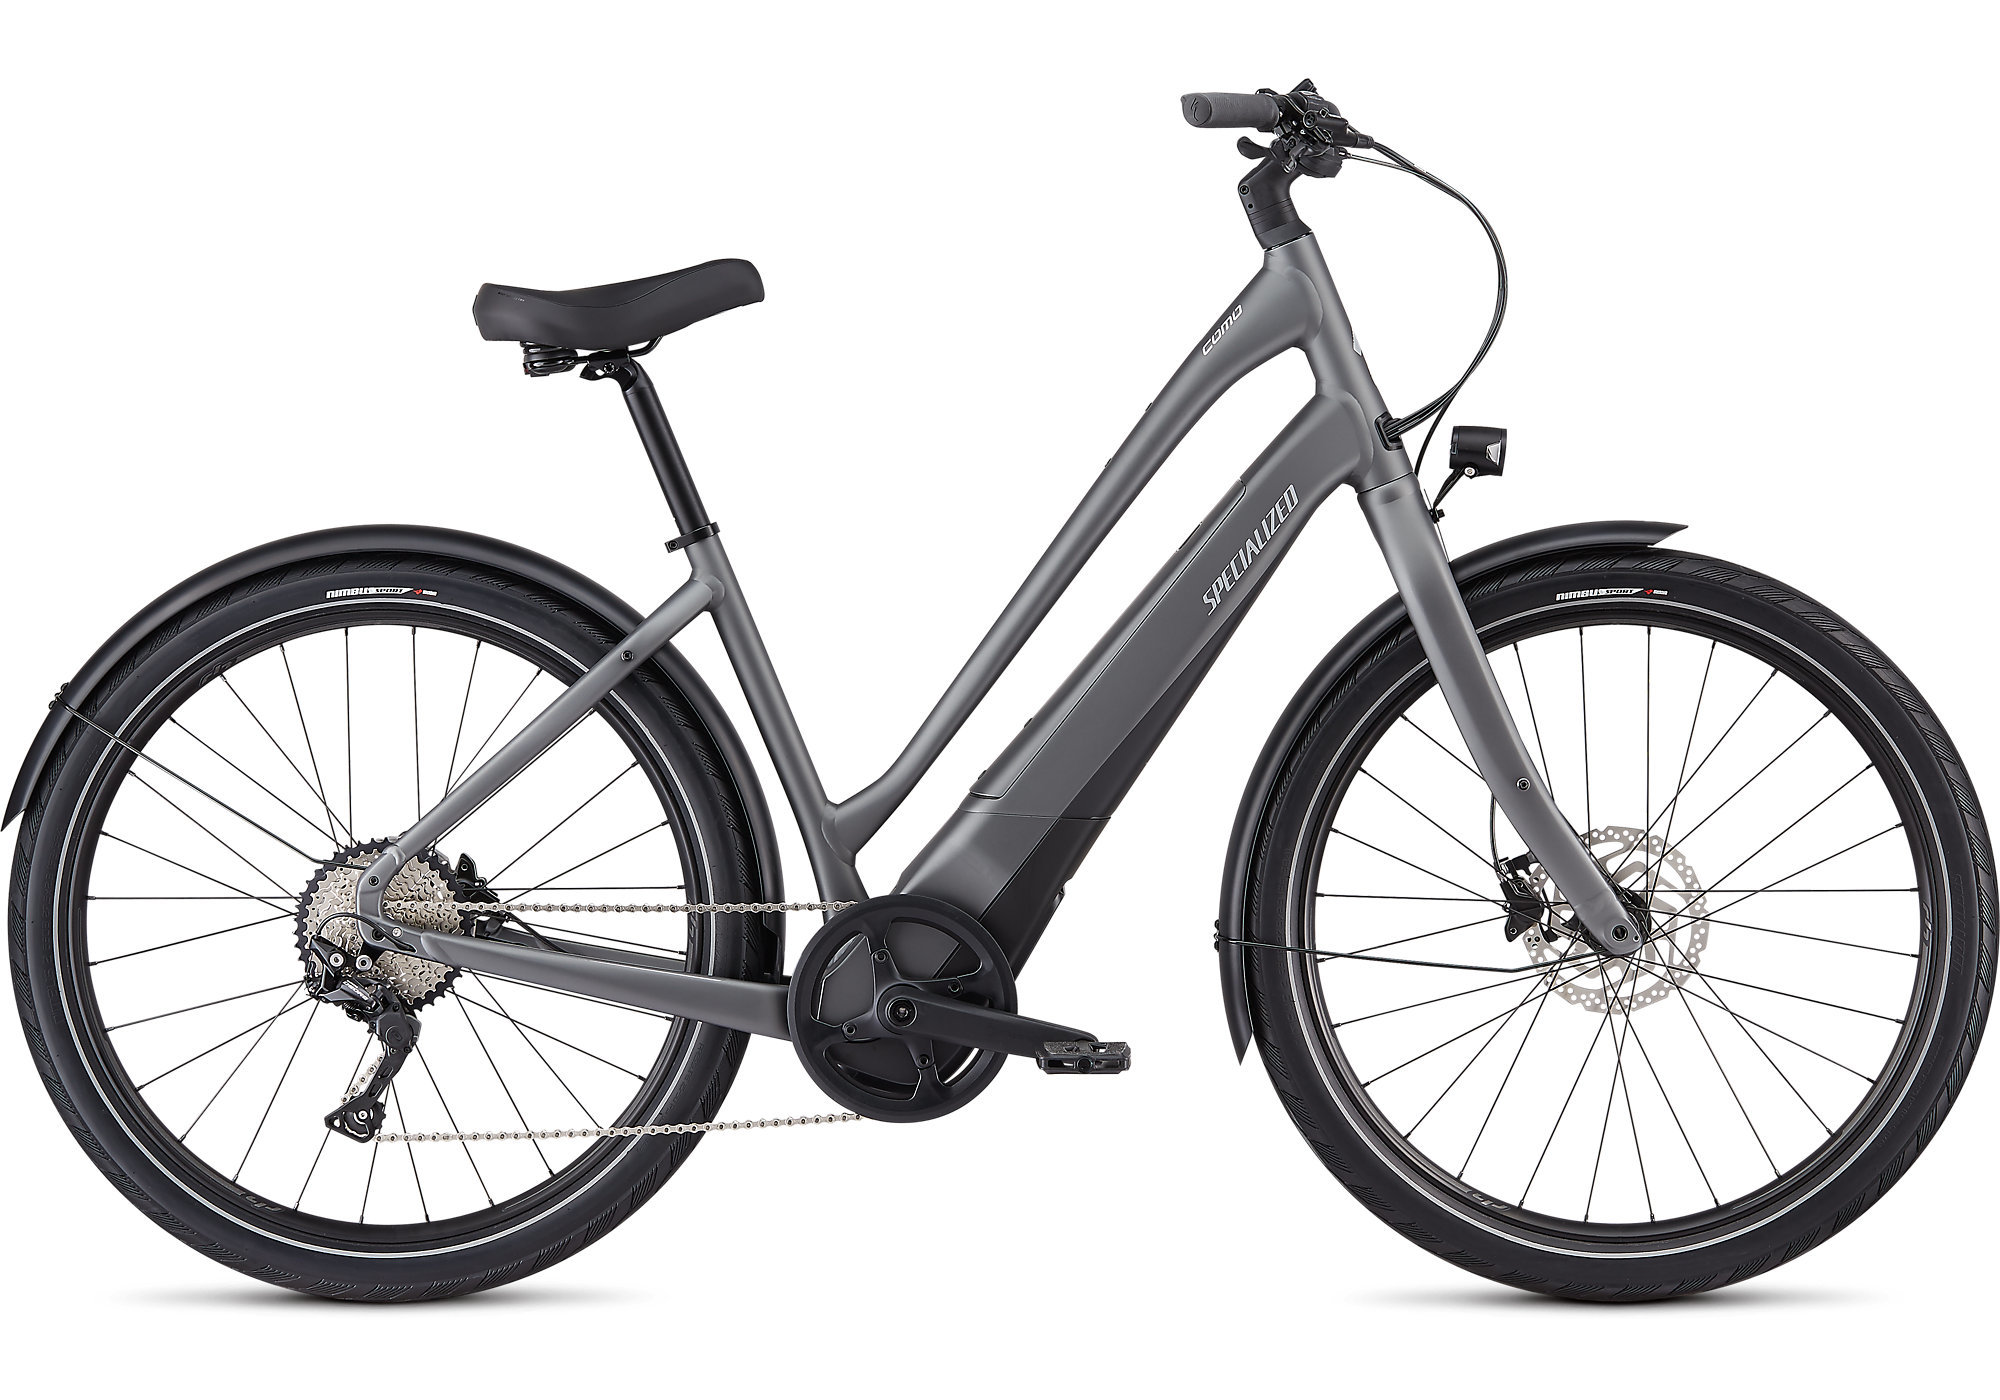 Specialized Como 4.0 Turbo Electric Demo Bike